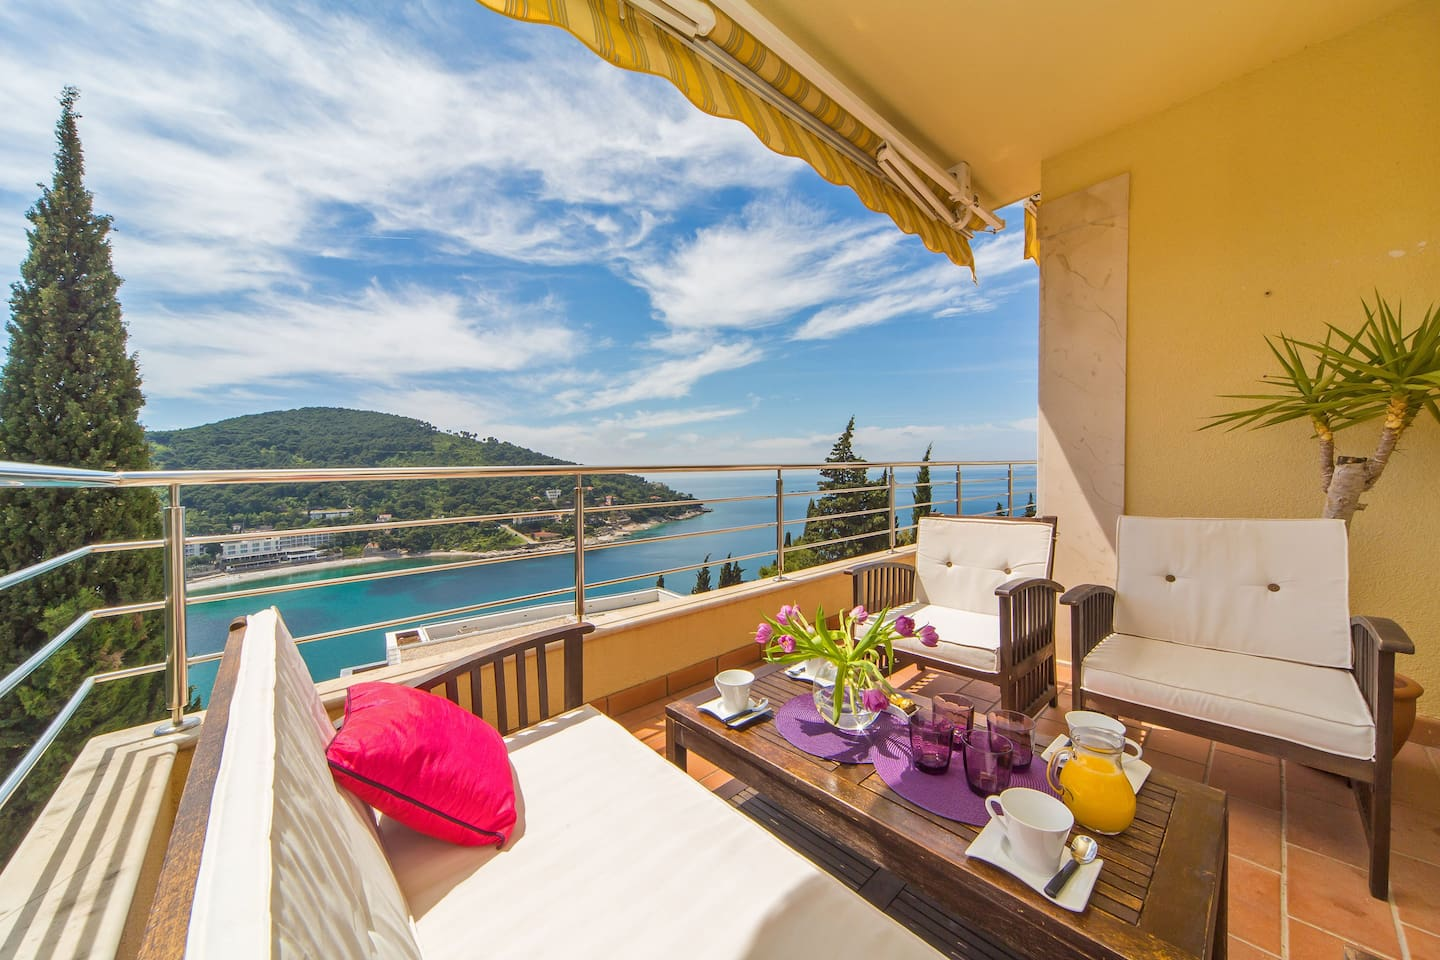 Superb position overlooking Lapad Peninsula and the beautiful turquoise waters of the Adriatic Sea